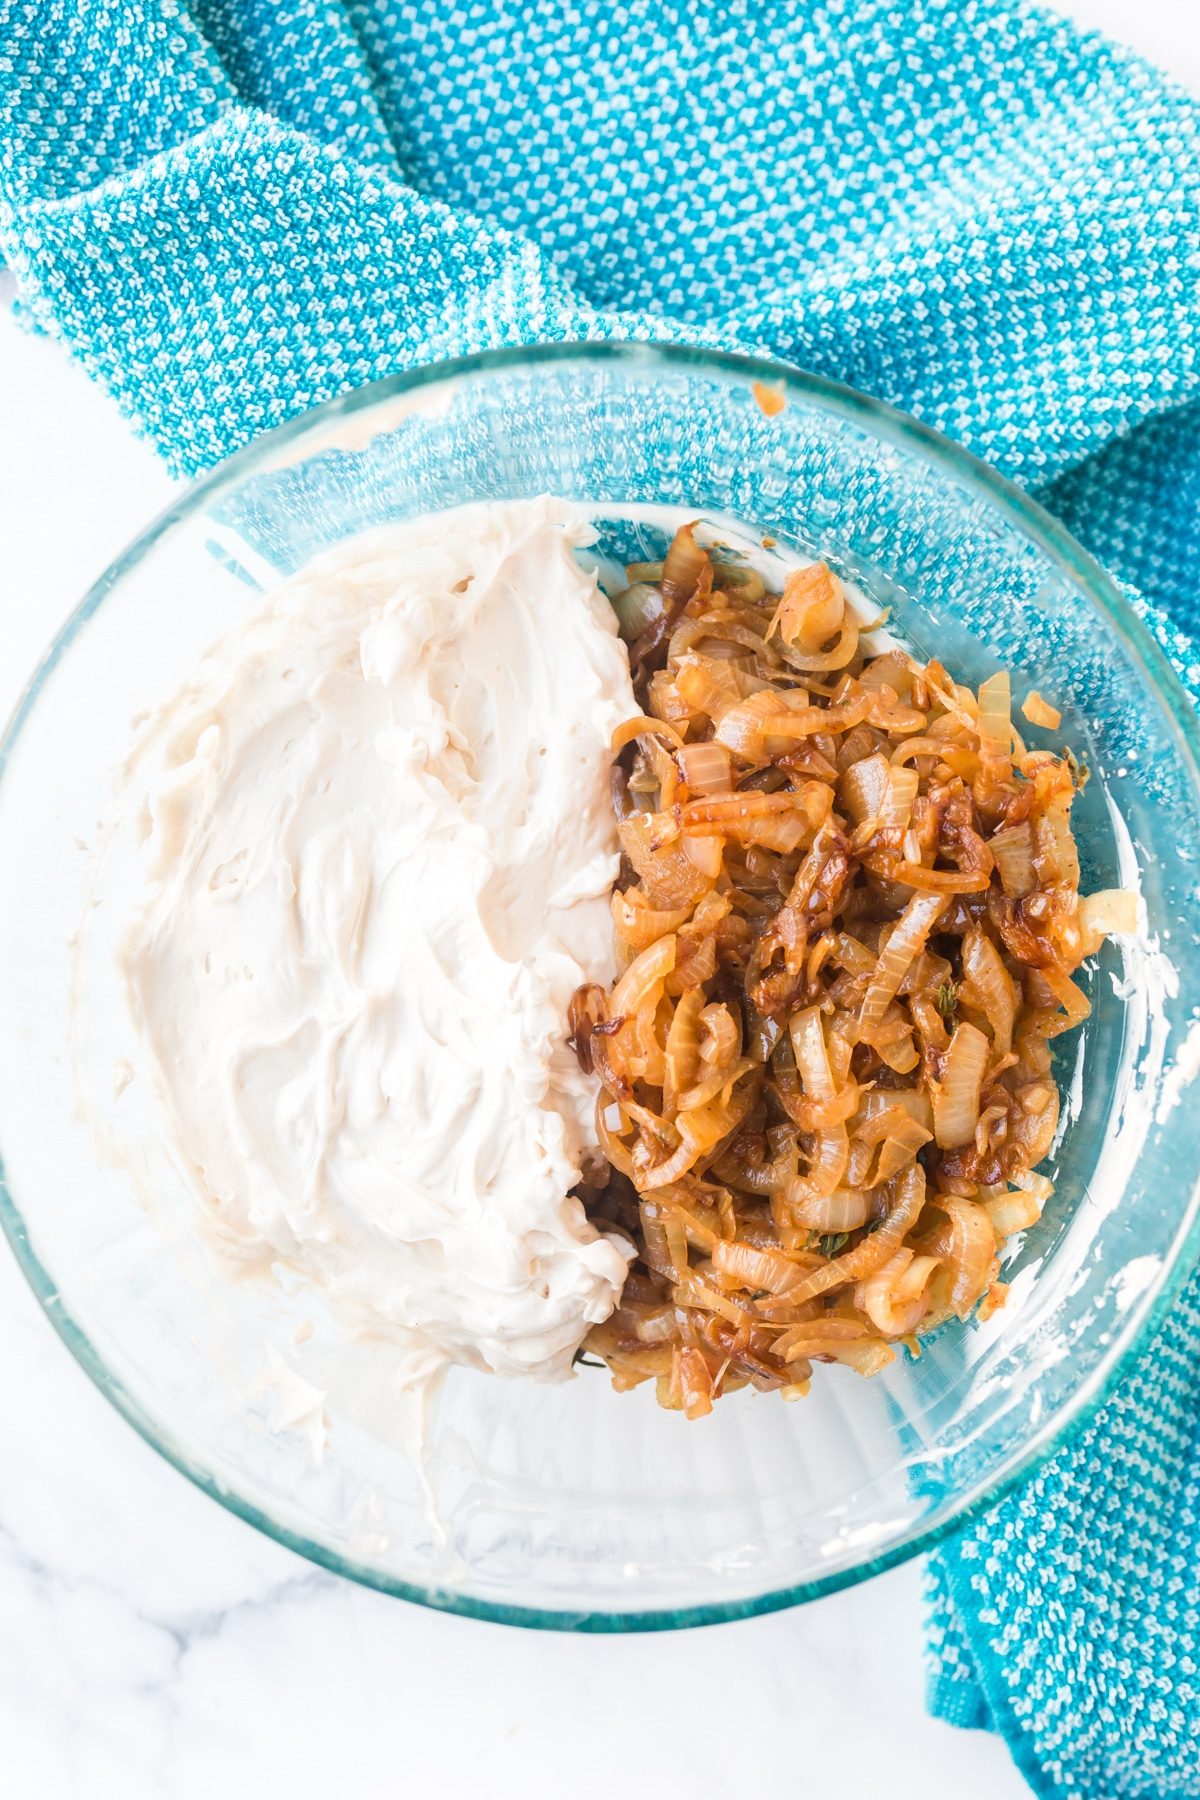 Hot Caramelized Onion Dip with Fried Onions Recipe #ASpicyPerspective #dip #hotdip